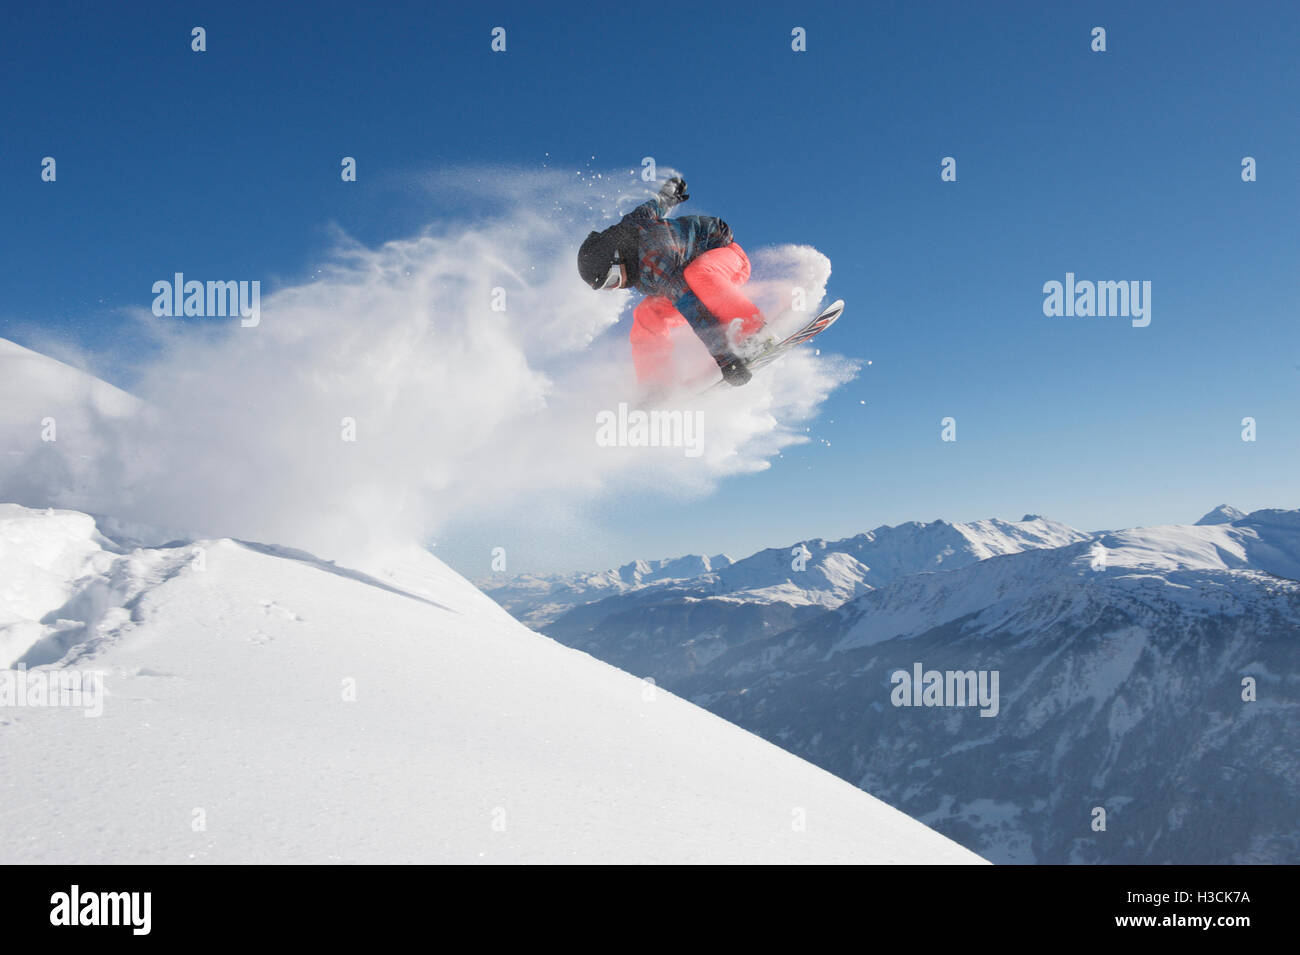 Jump with a snowboard with a grab - Stock Image